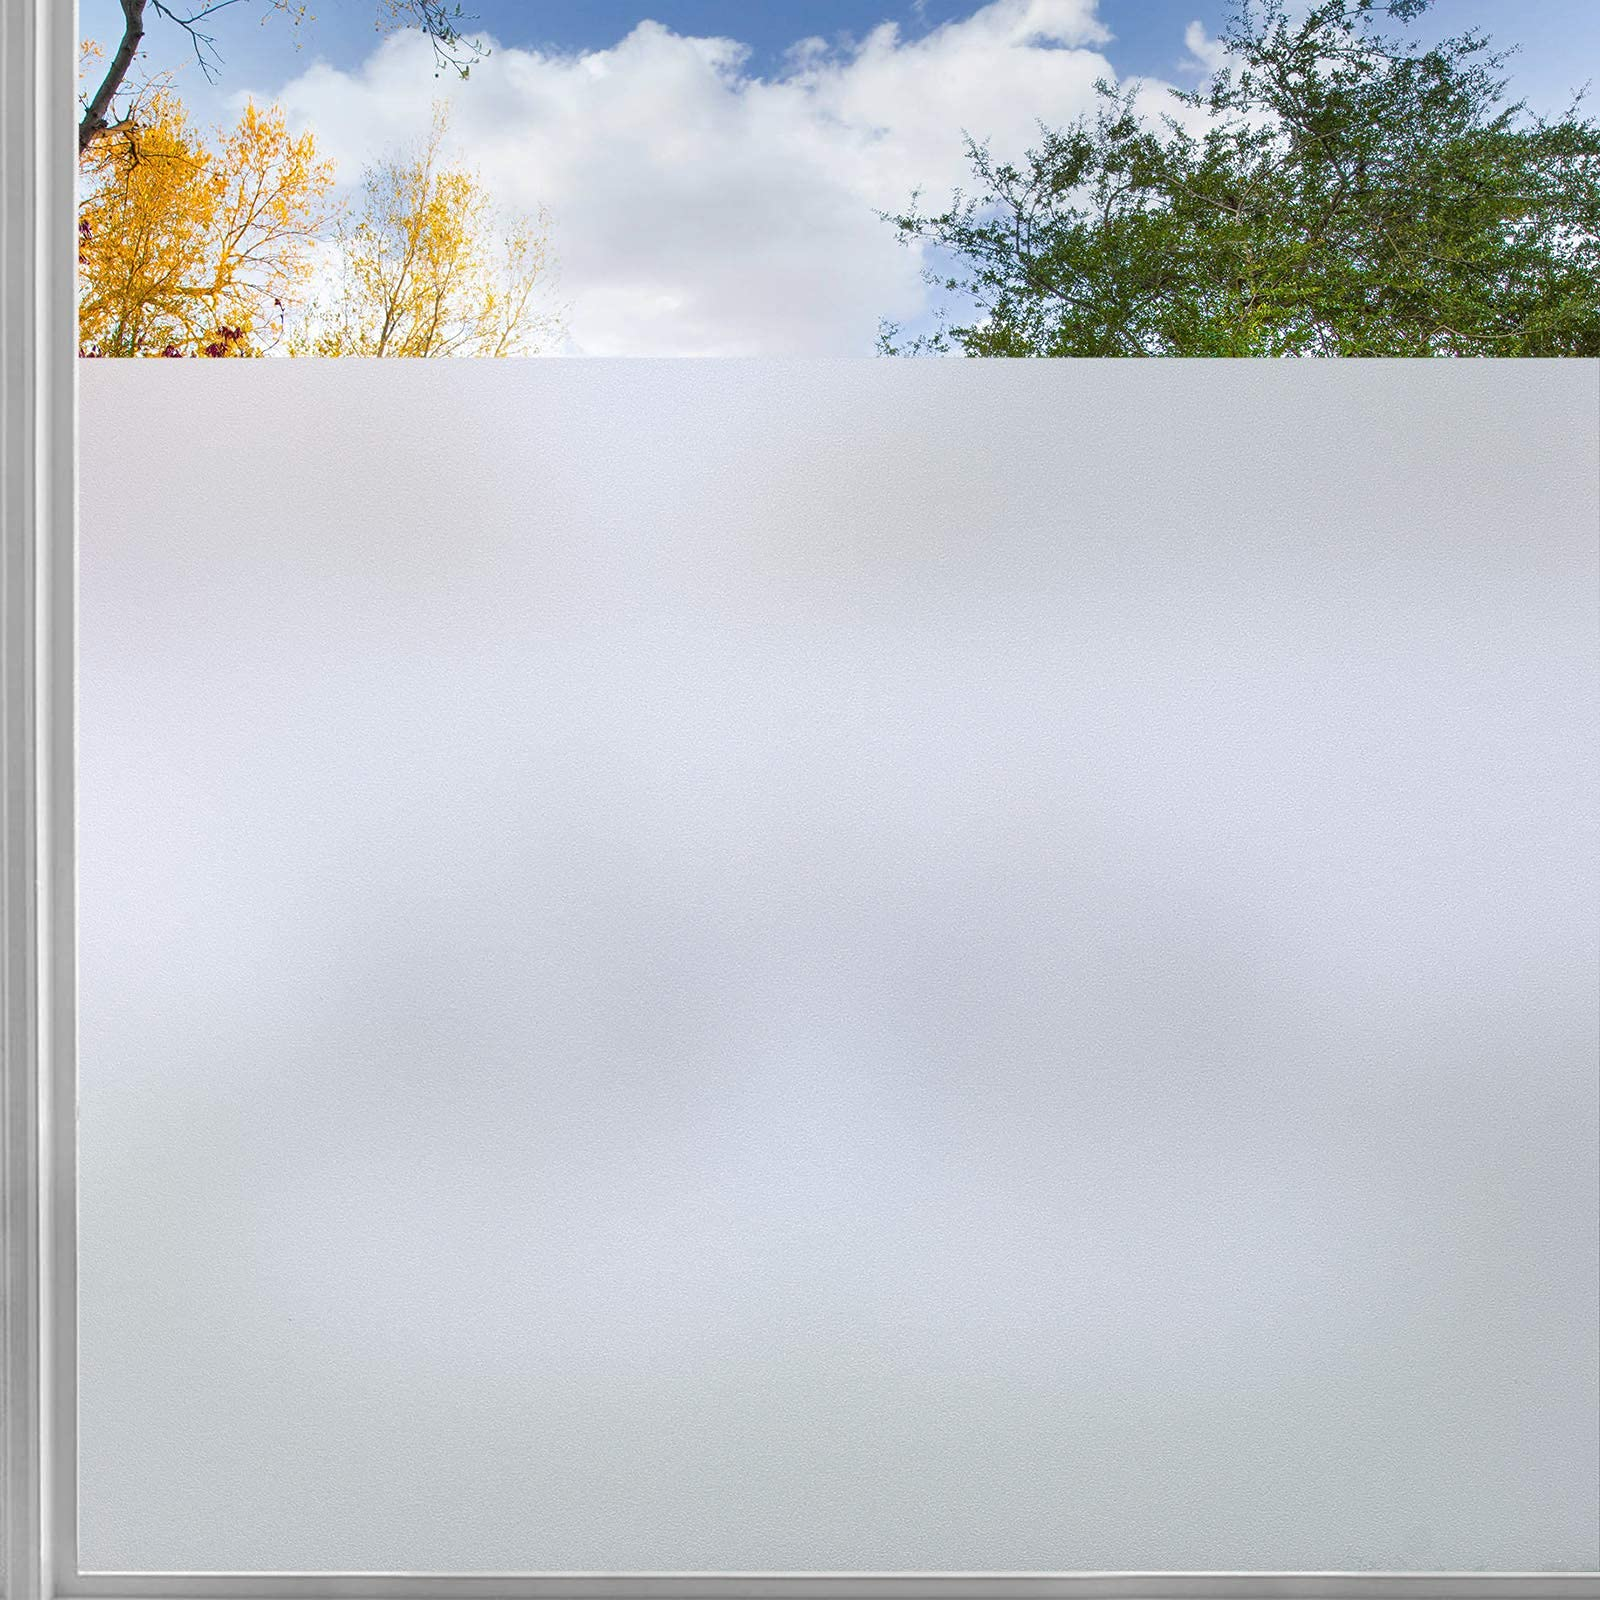 rabbitgoo Privacy Window Film, Frosted Sticker with Grid Lines Backing, Removable Opaque UV Protection Glass Covering Non-Adhesives Static Decals Cling for Home, 35.4 x 118 inches, Grid Lines Backing